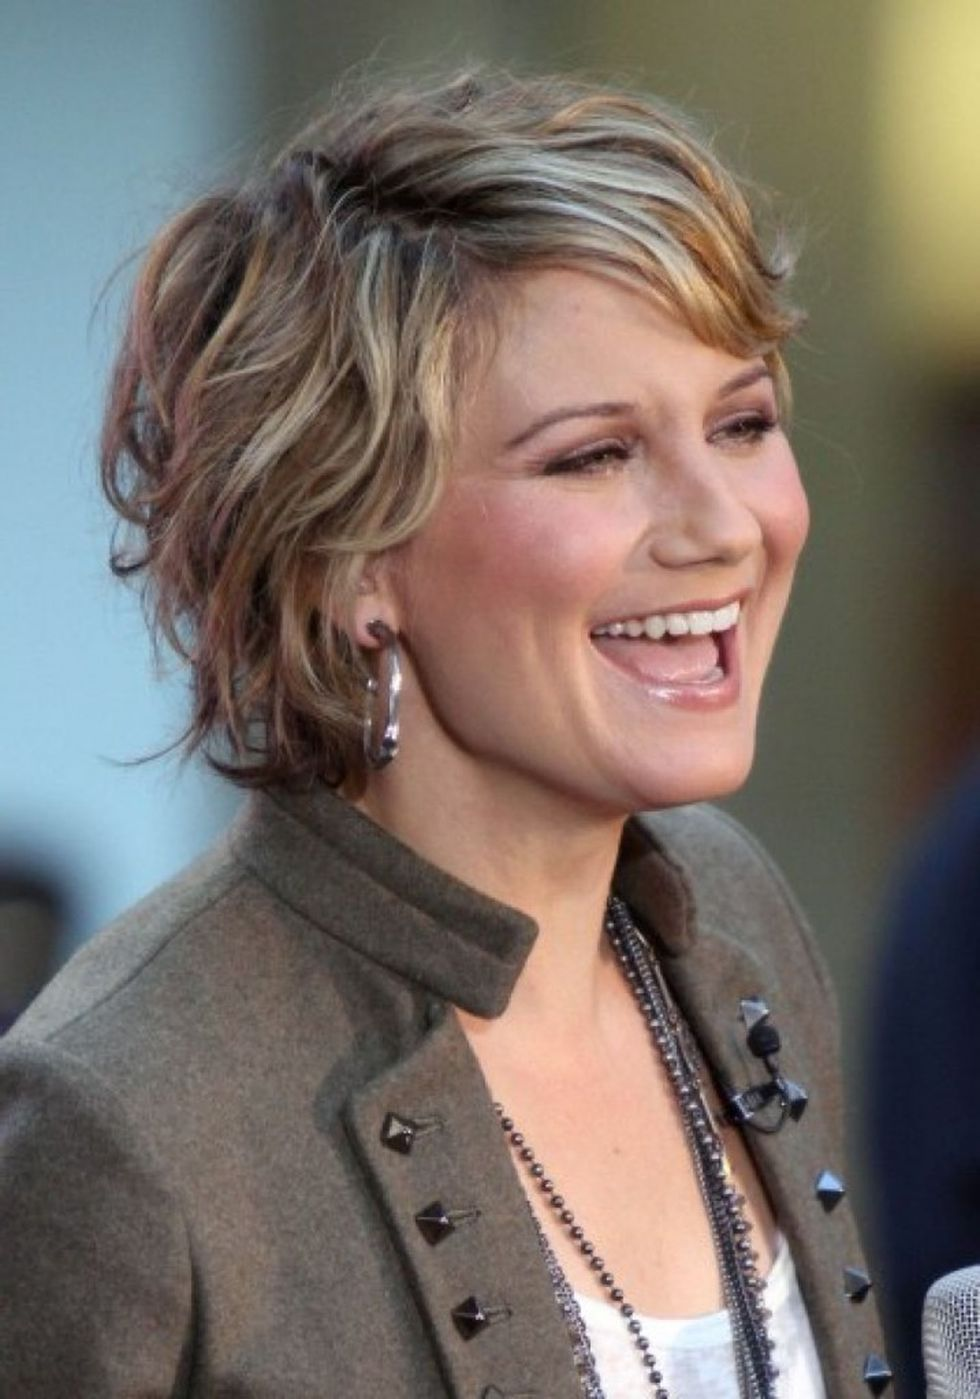 Fabulous over short hairstyle ideas hairstylesforwomenover